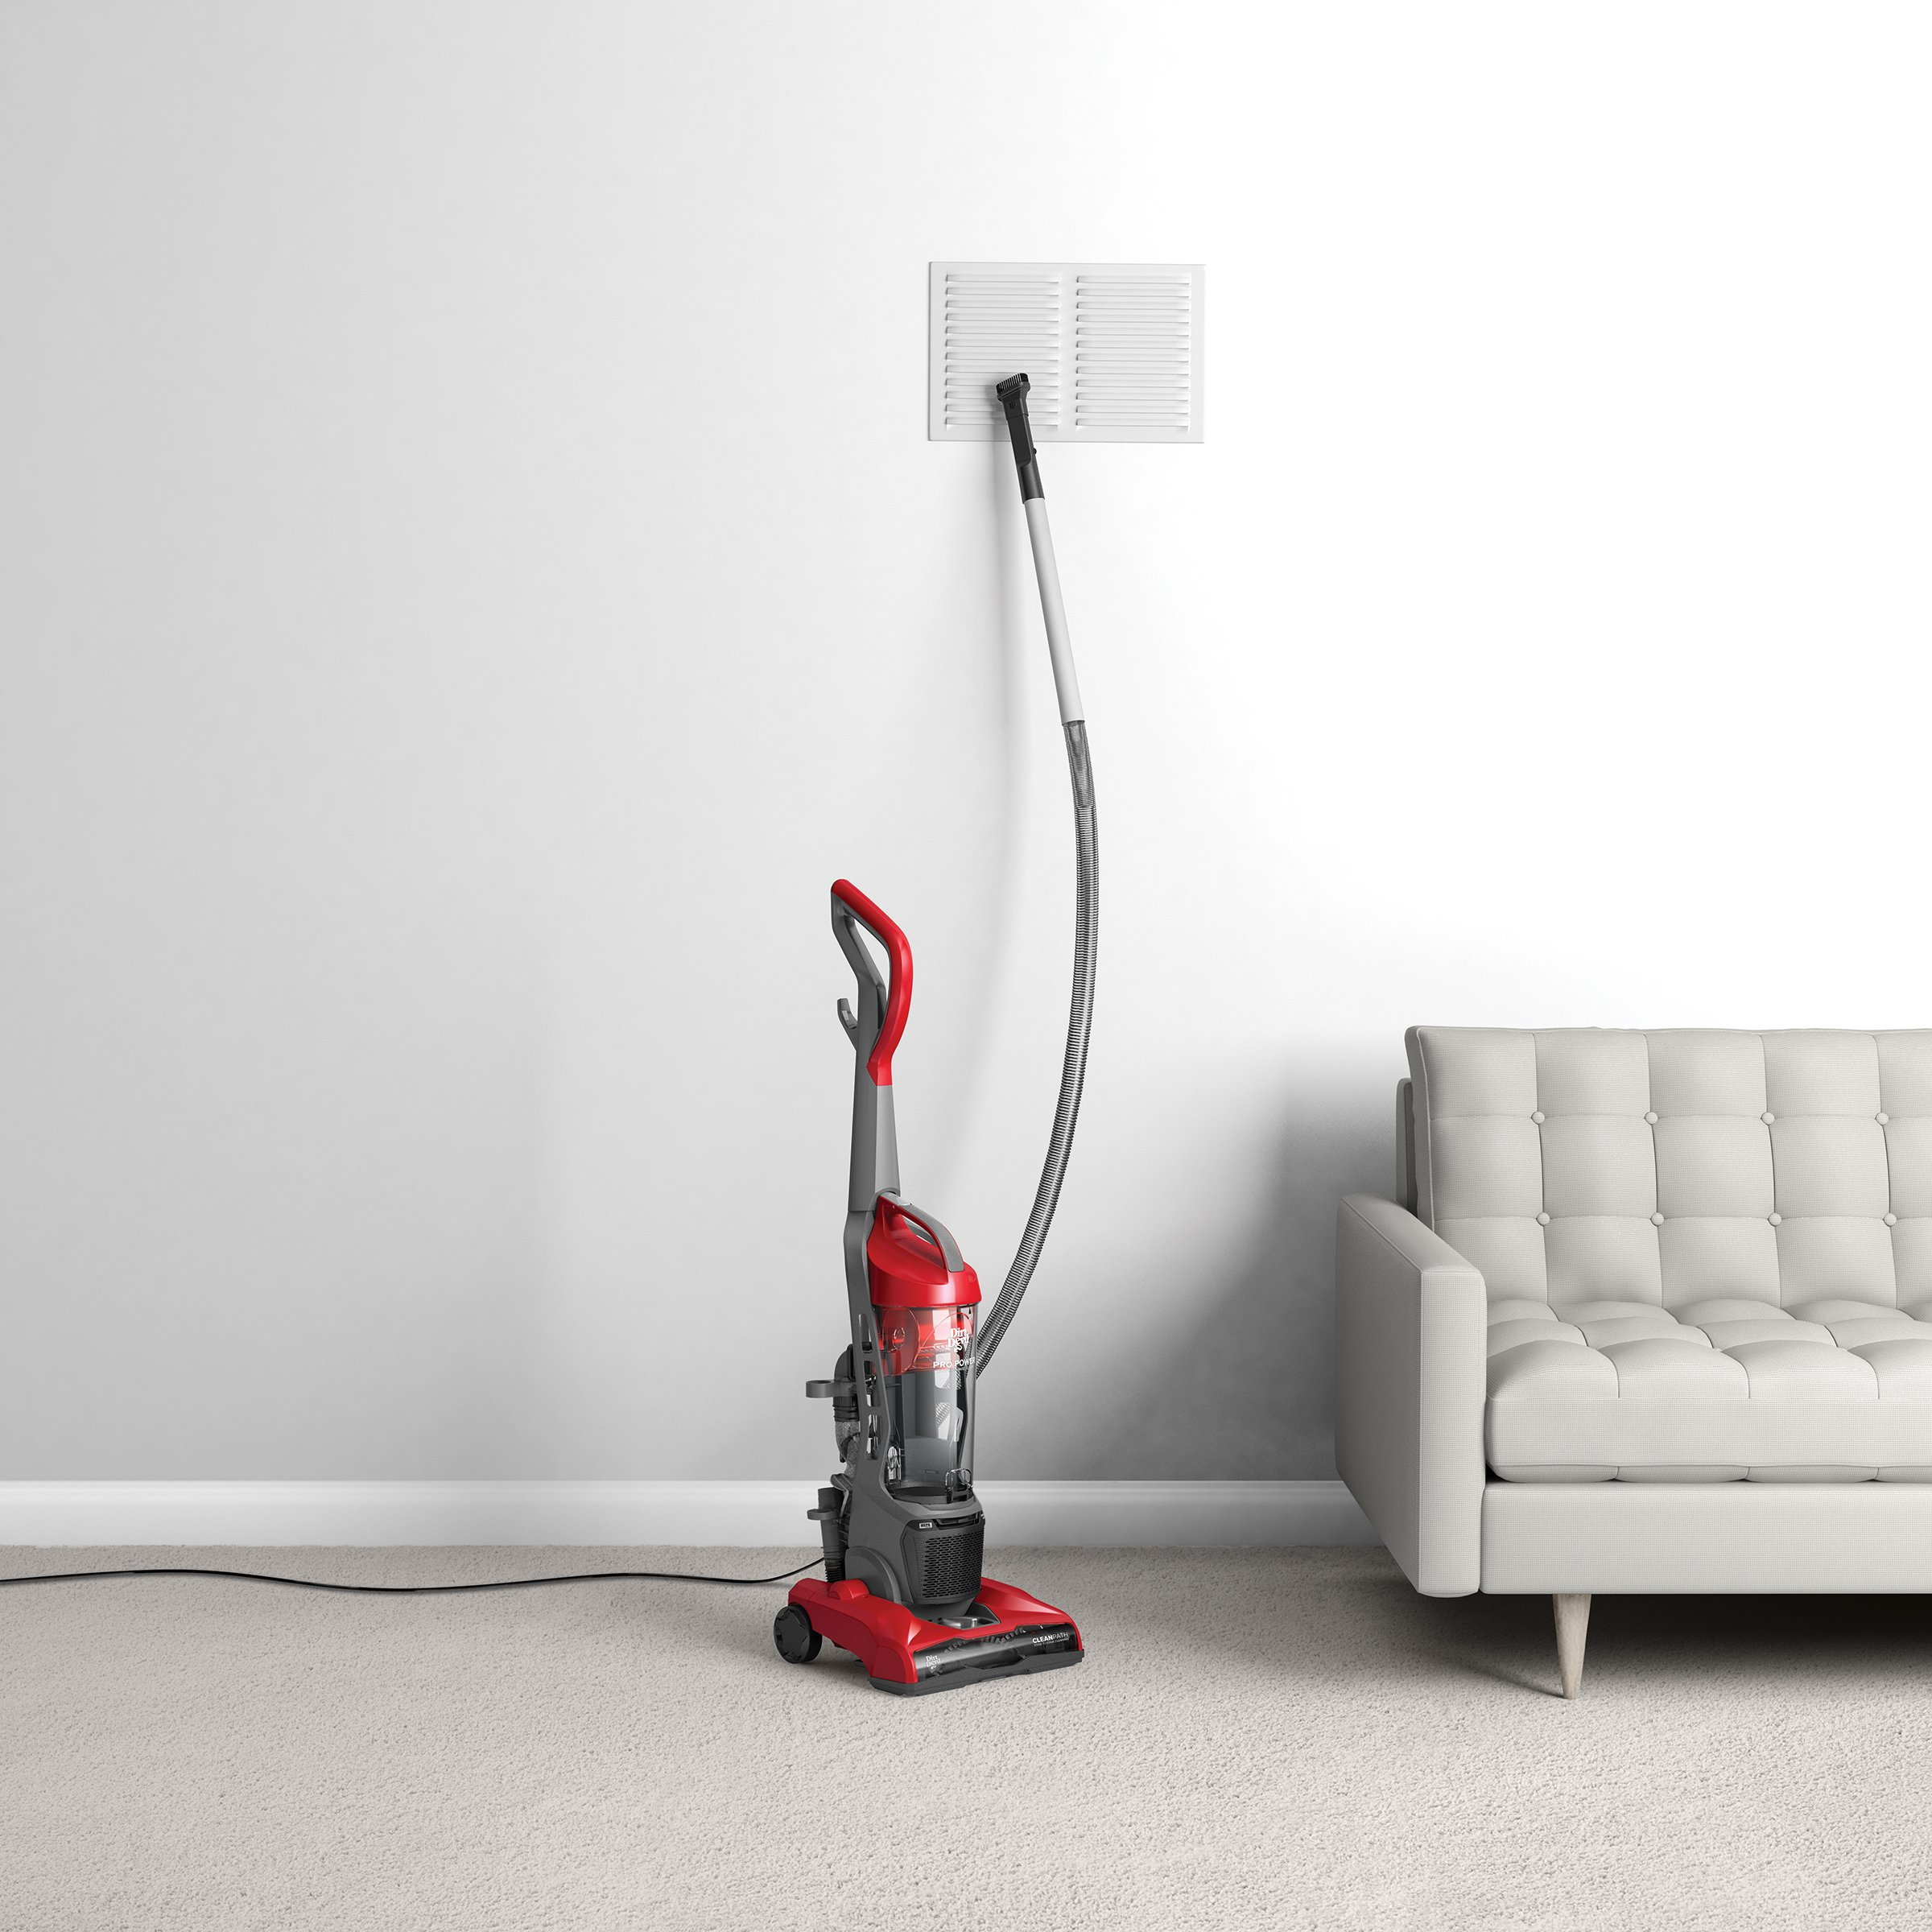 Dirt Devil Vacuum Cleaner Pro Power Bagless Corded Upright Vacuum UD70172 by Dirt Devil (Image #4)